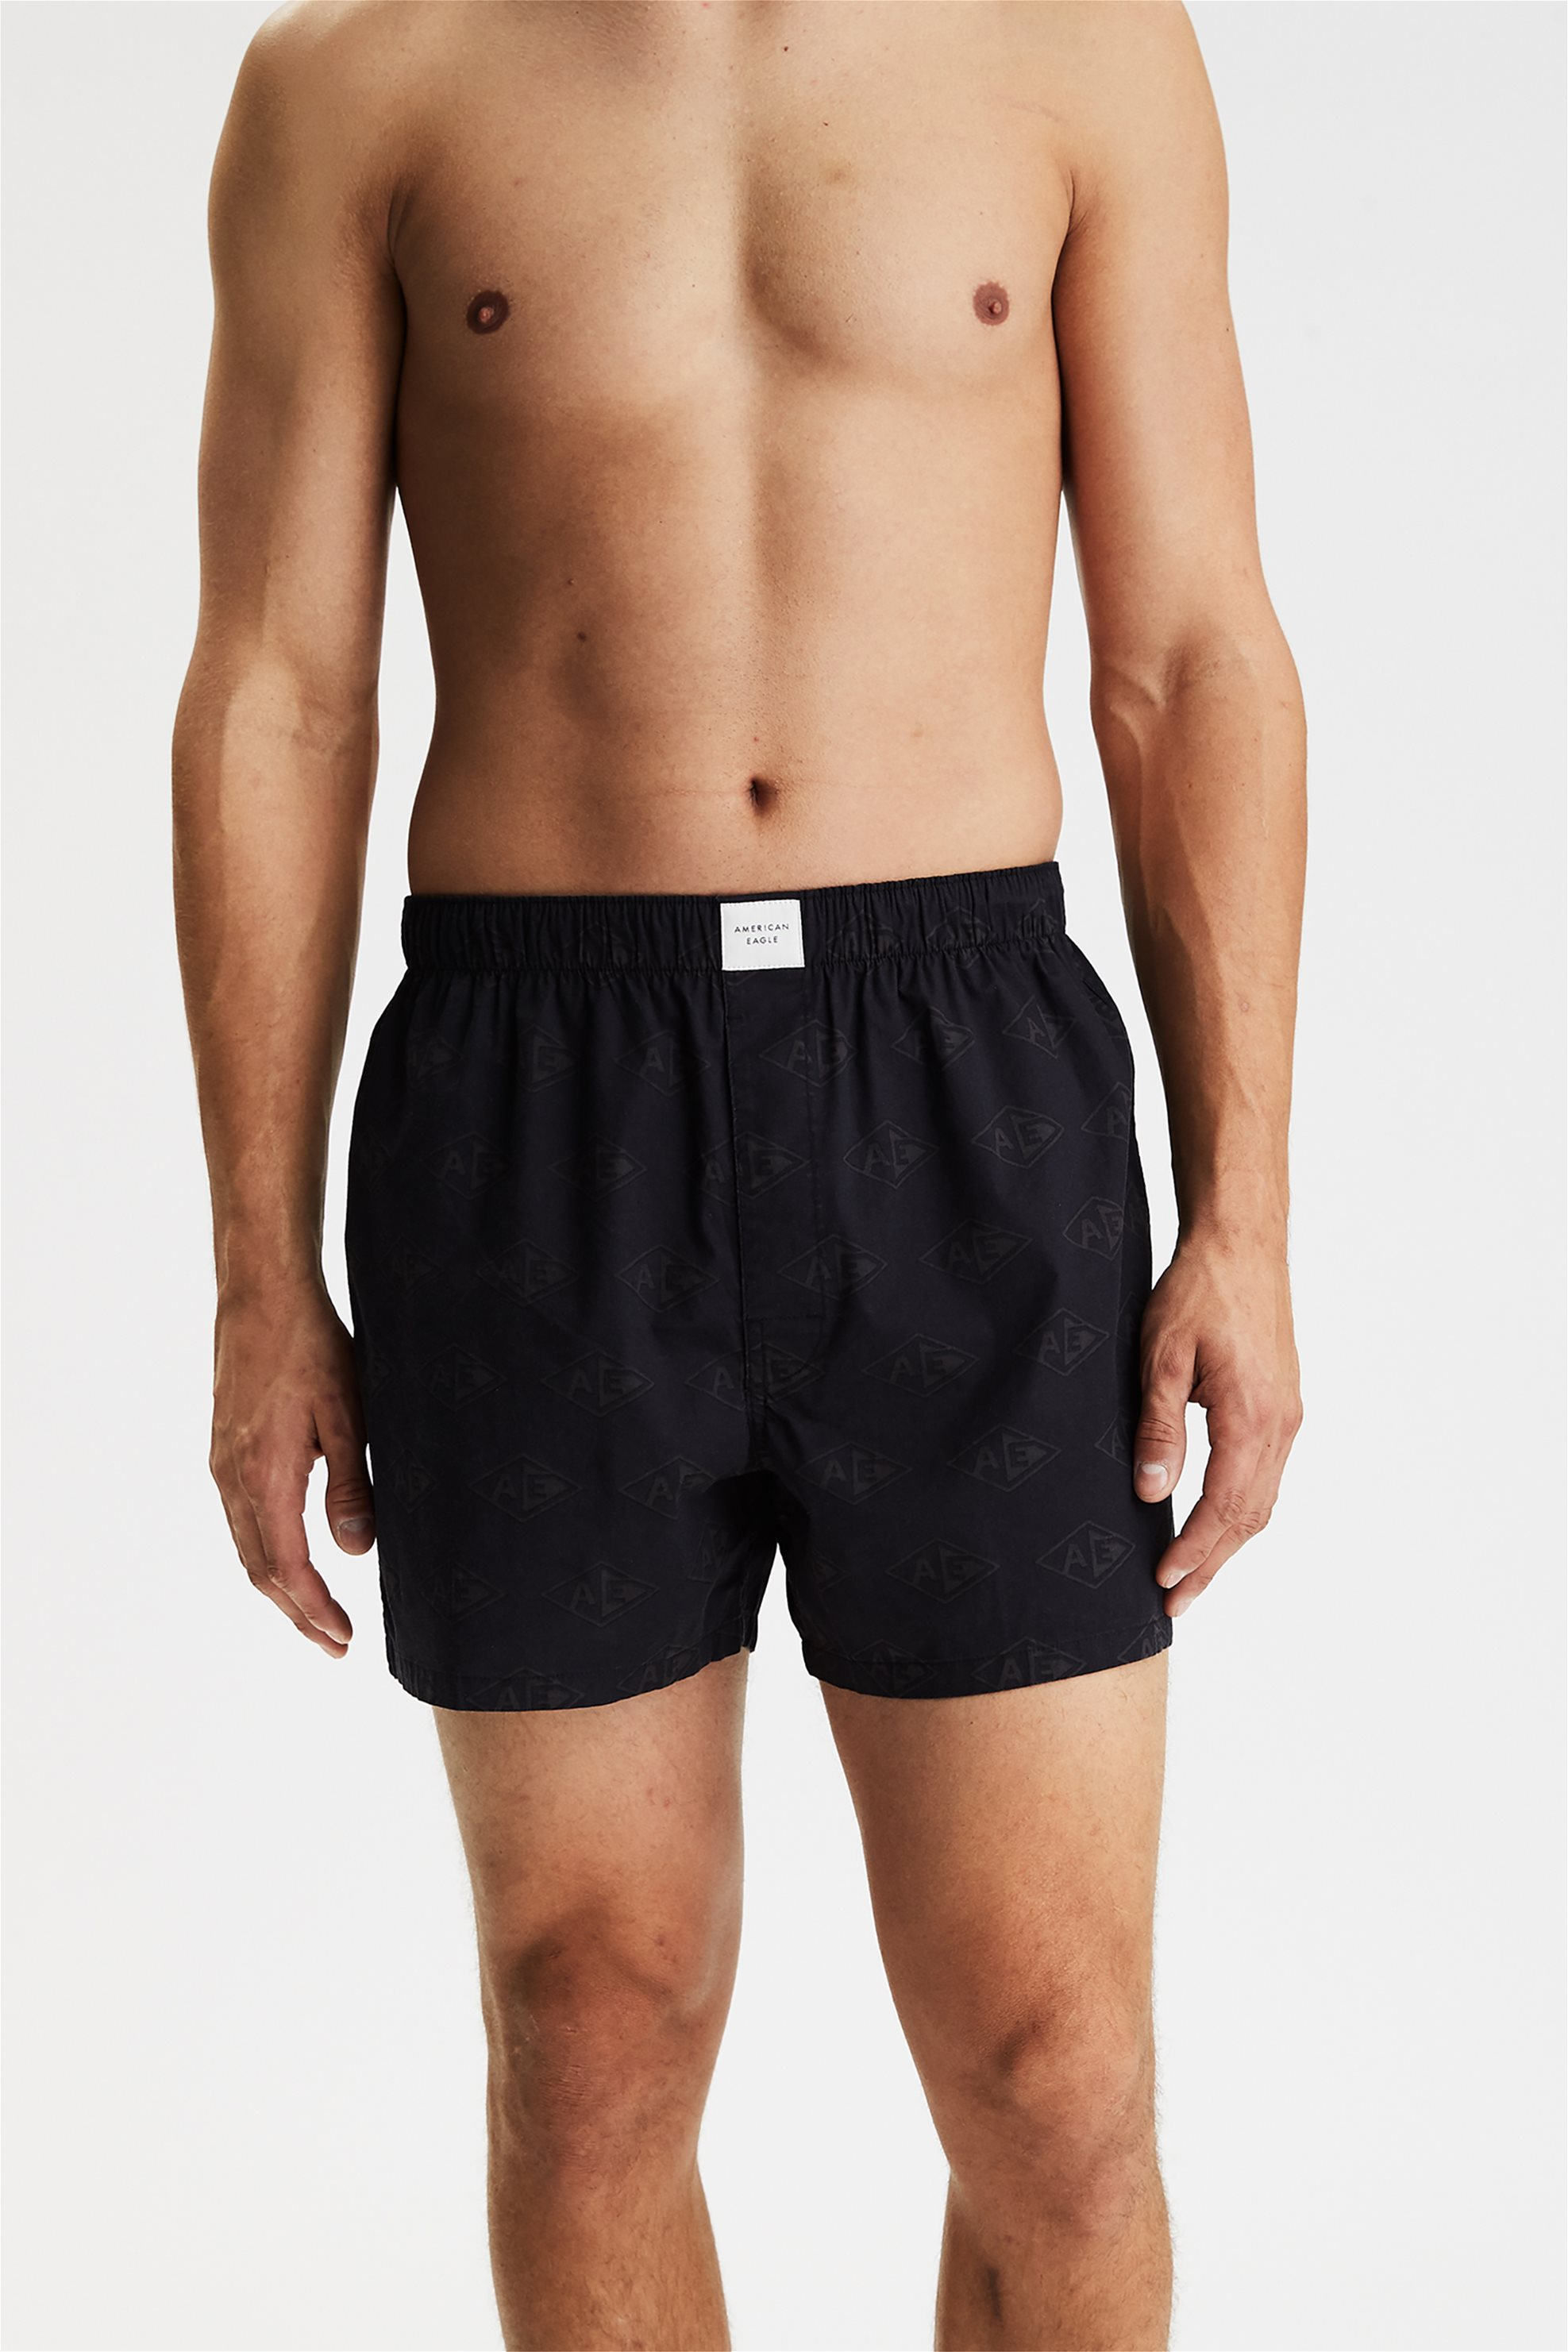 AEO Diamond Logo Stretch Boxer Short - 0220-9706-001 - Μαύρο